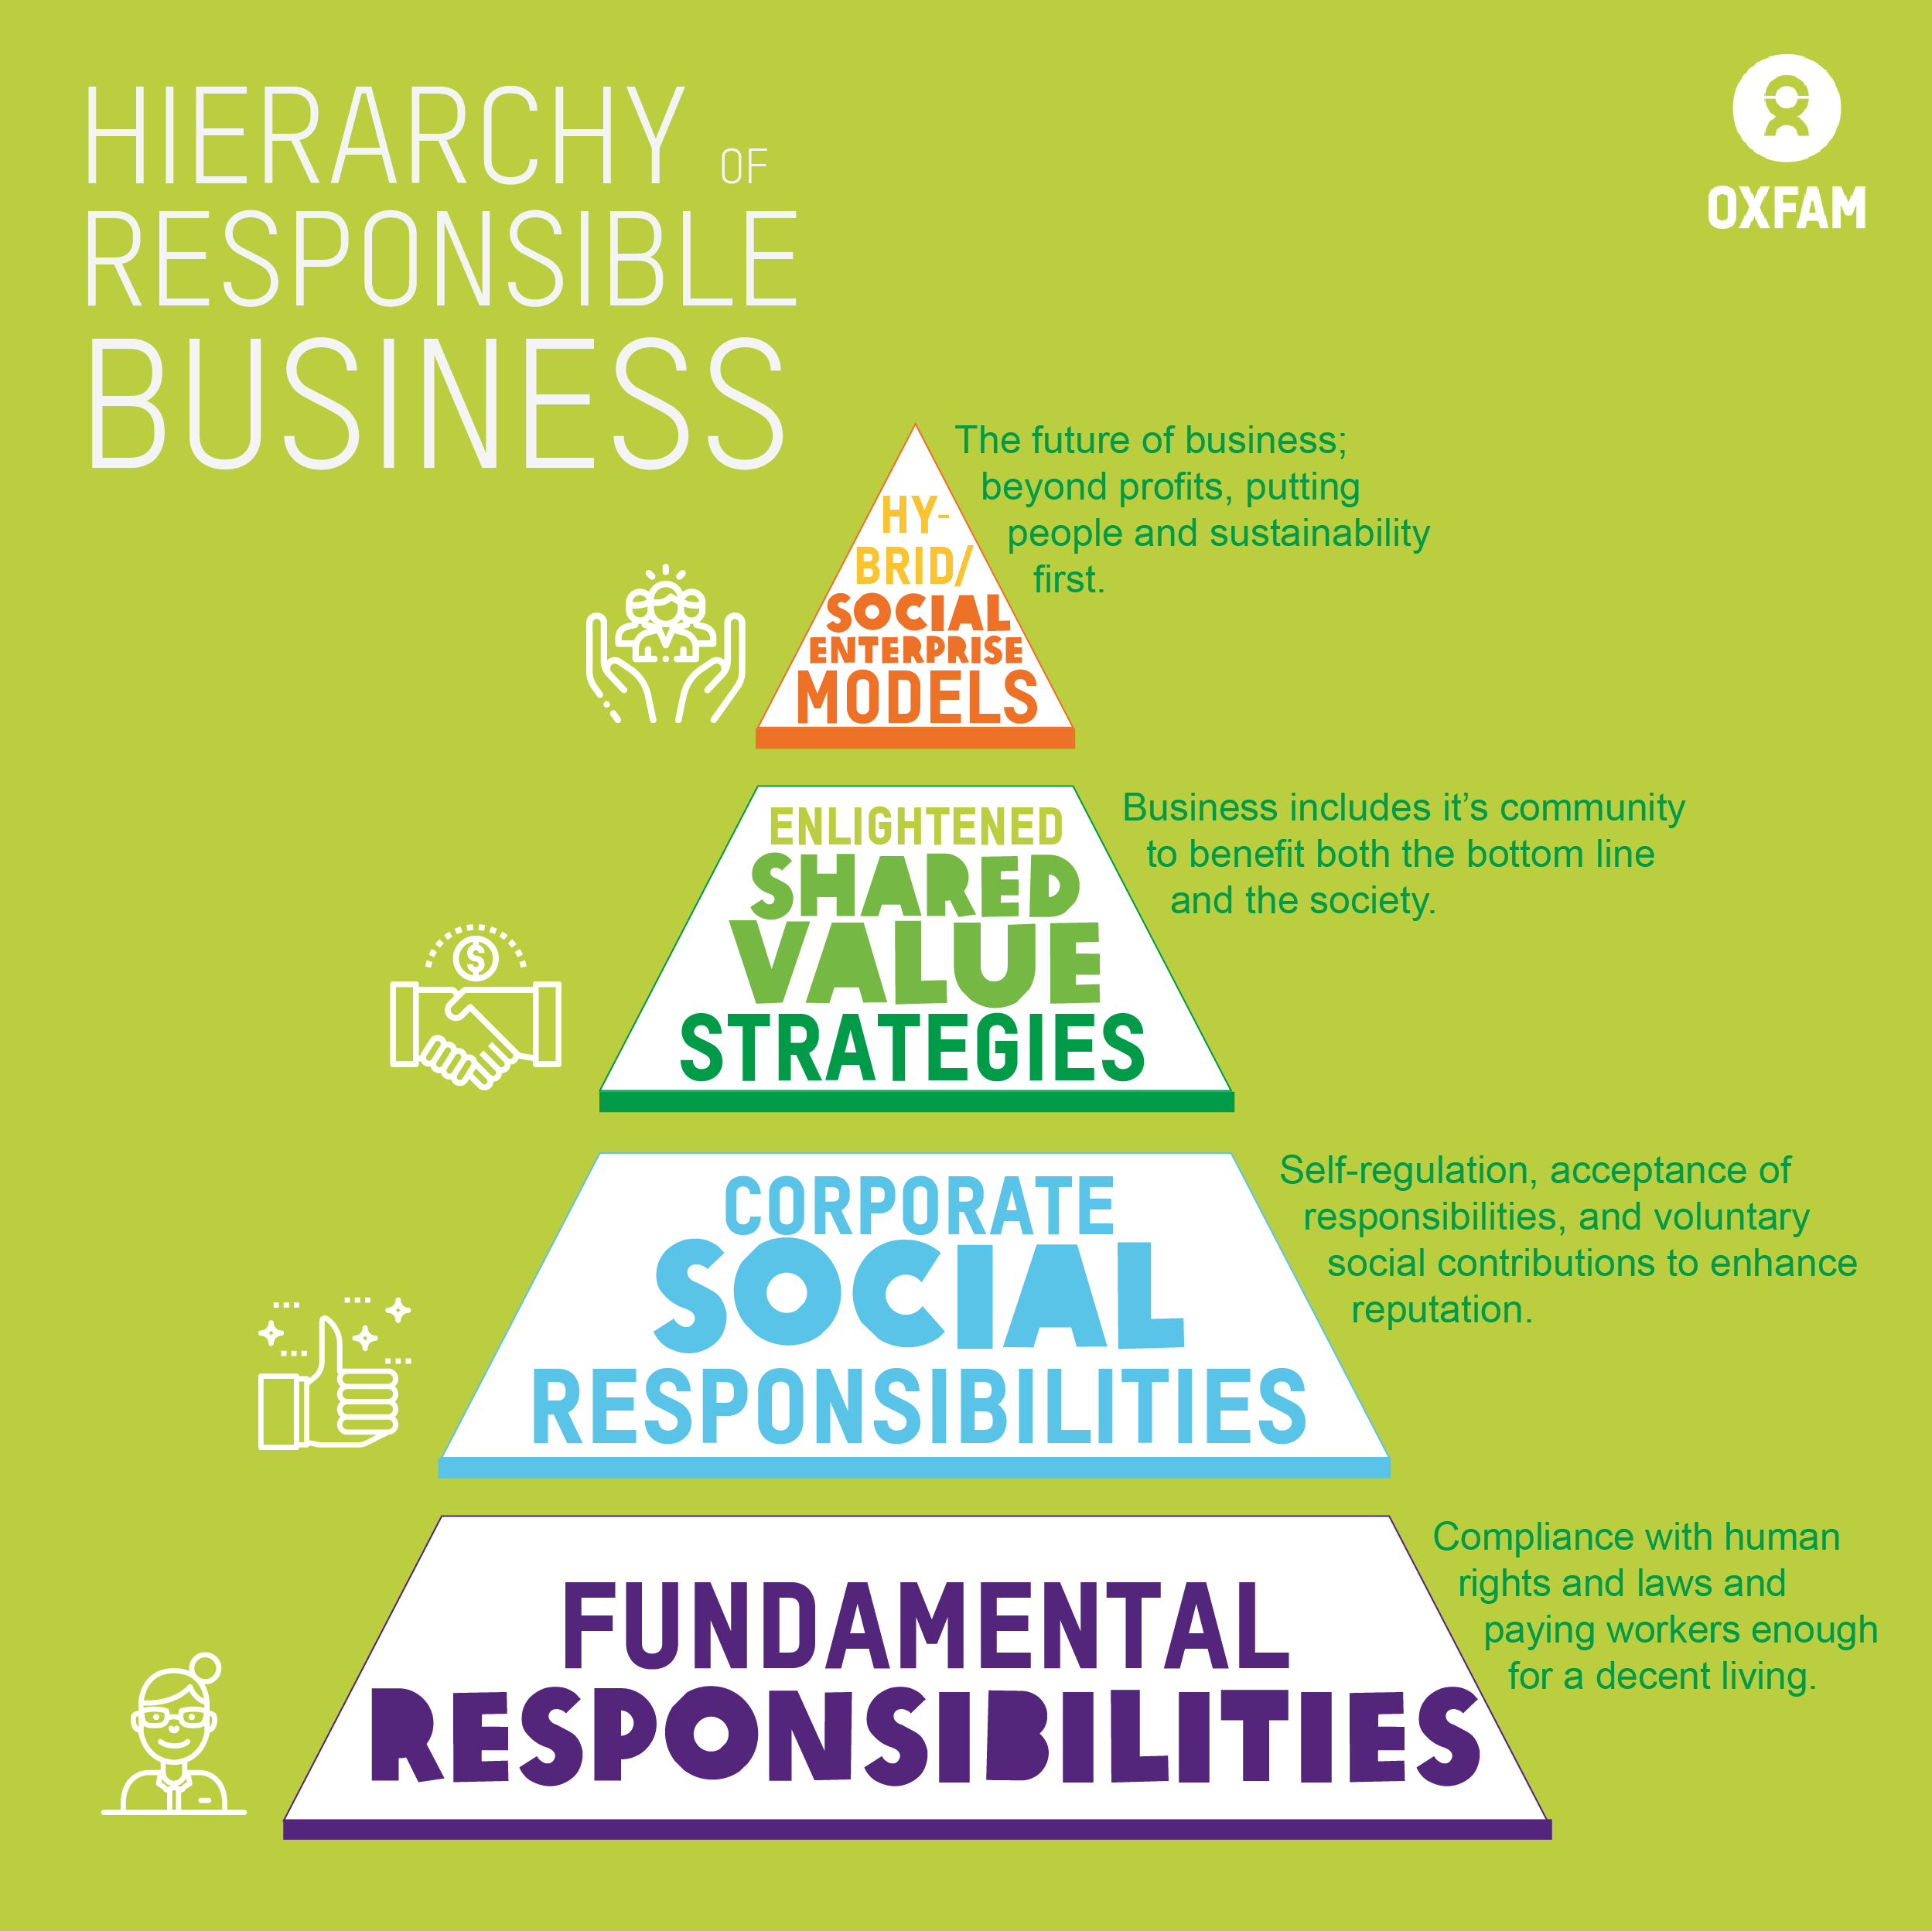 Oxfam in Asia - Hierarchy of Responsible Business